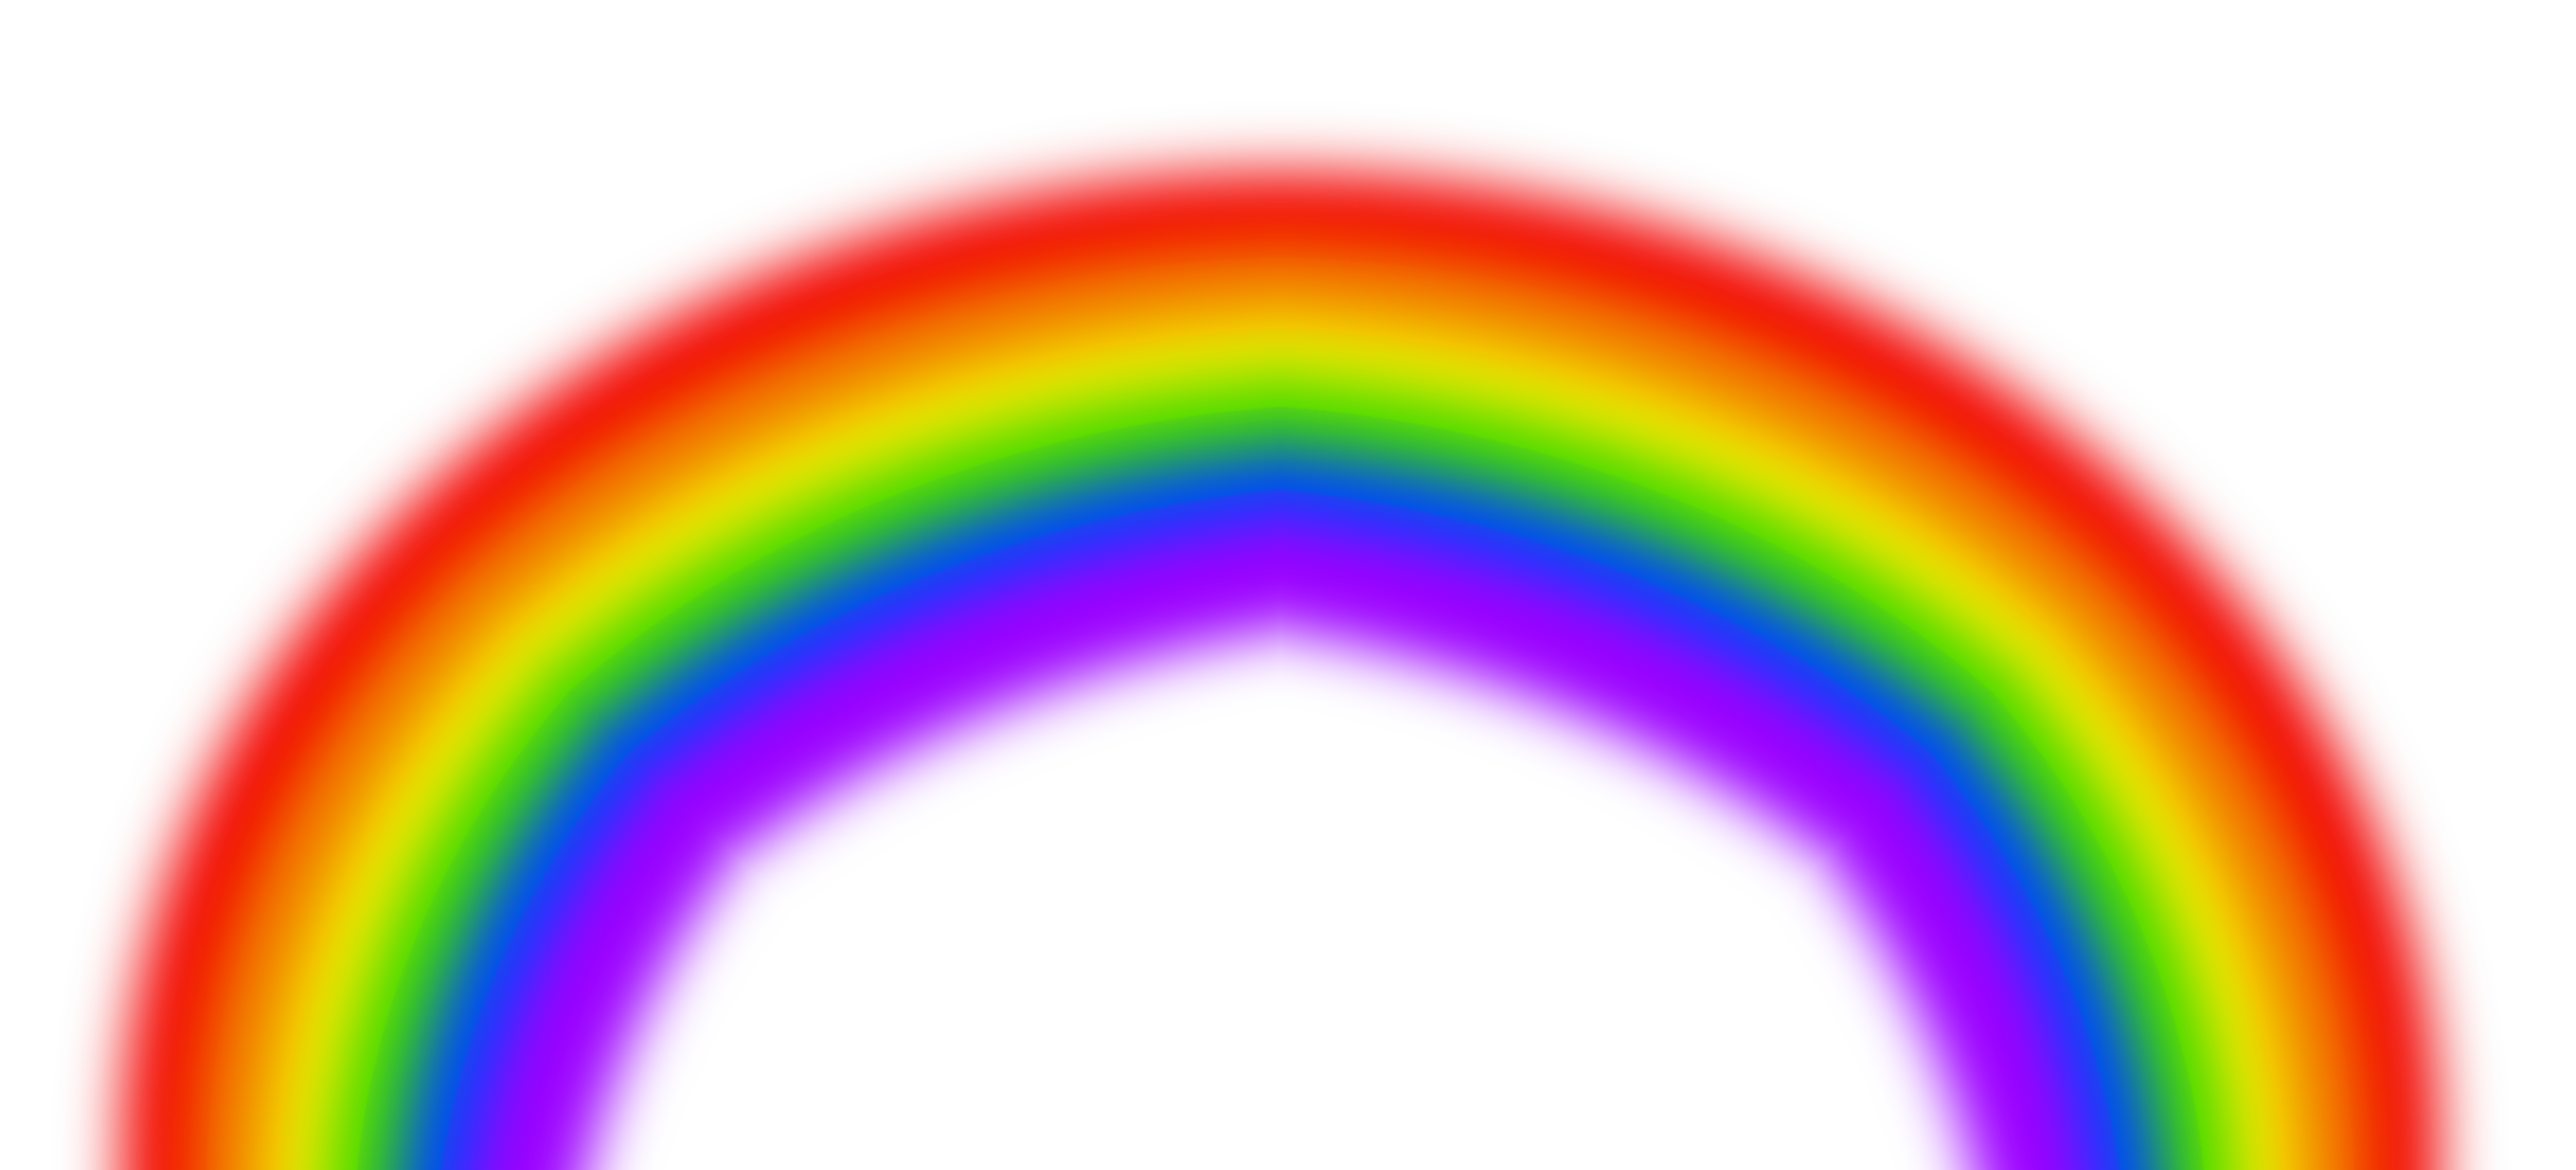 Rainbow png tumblr. Images free download image